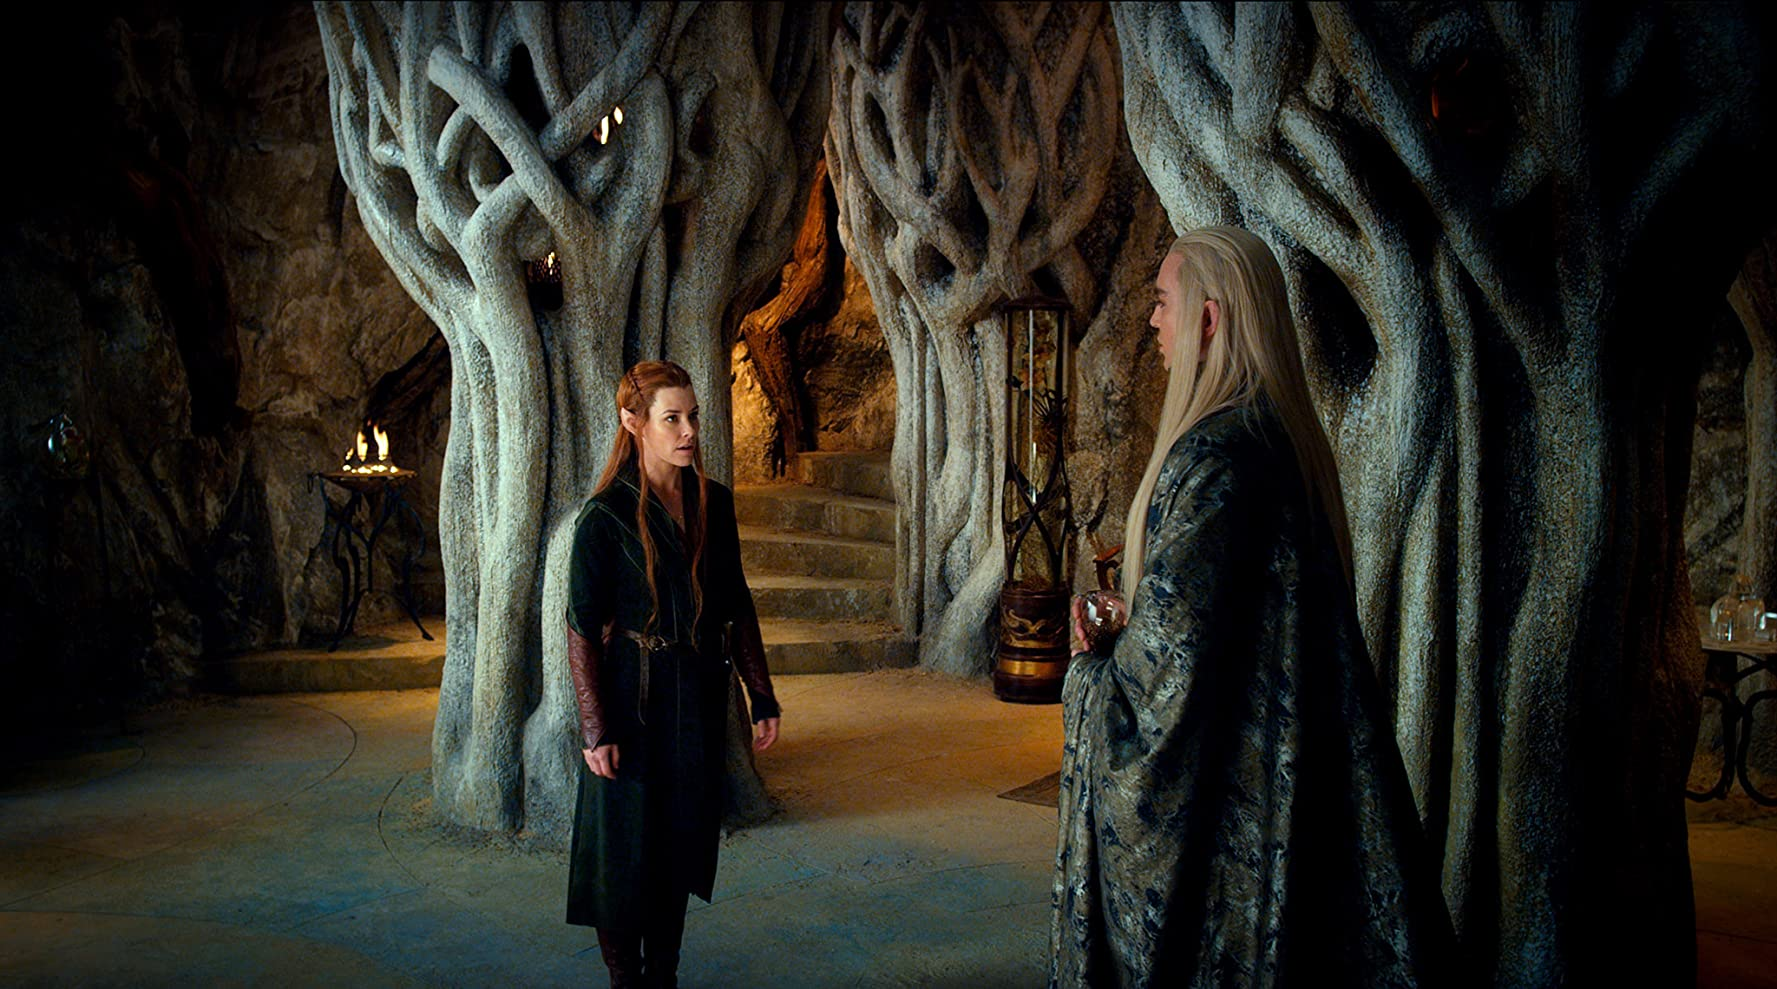 Lee Pace and Evangeline Lilly in The Hobbit: The Desolation of Smaug (2013)